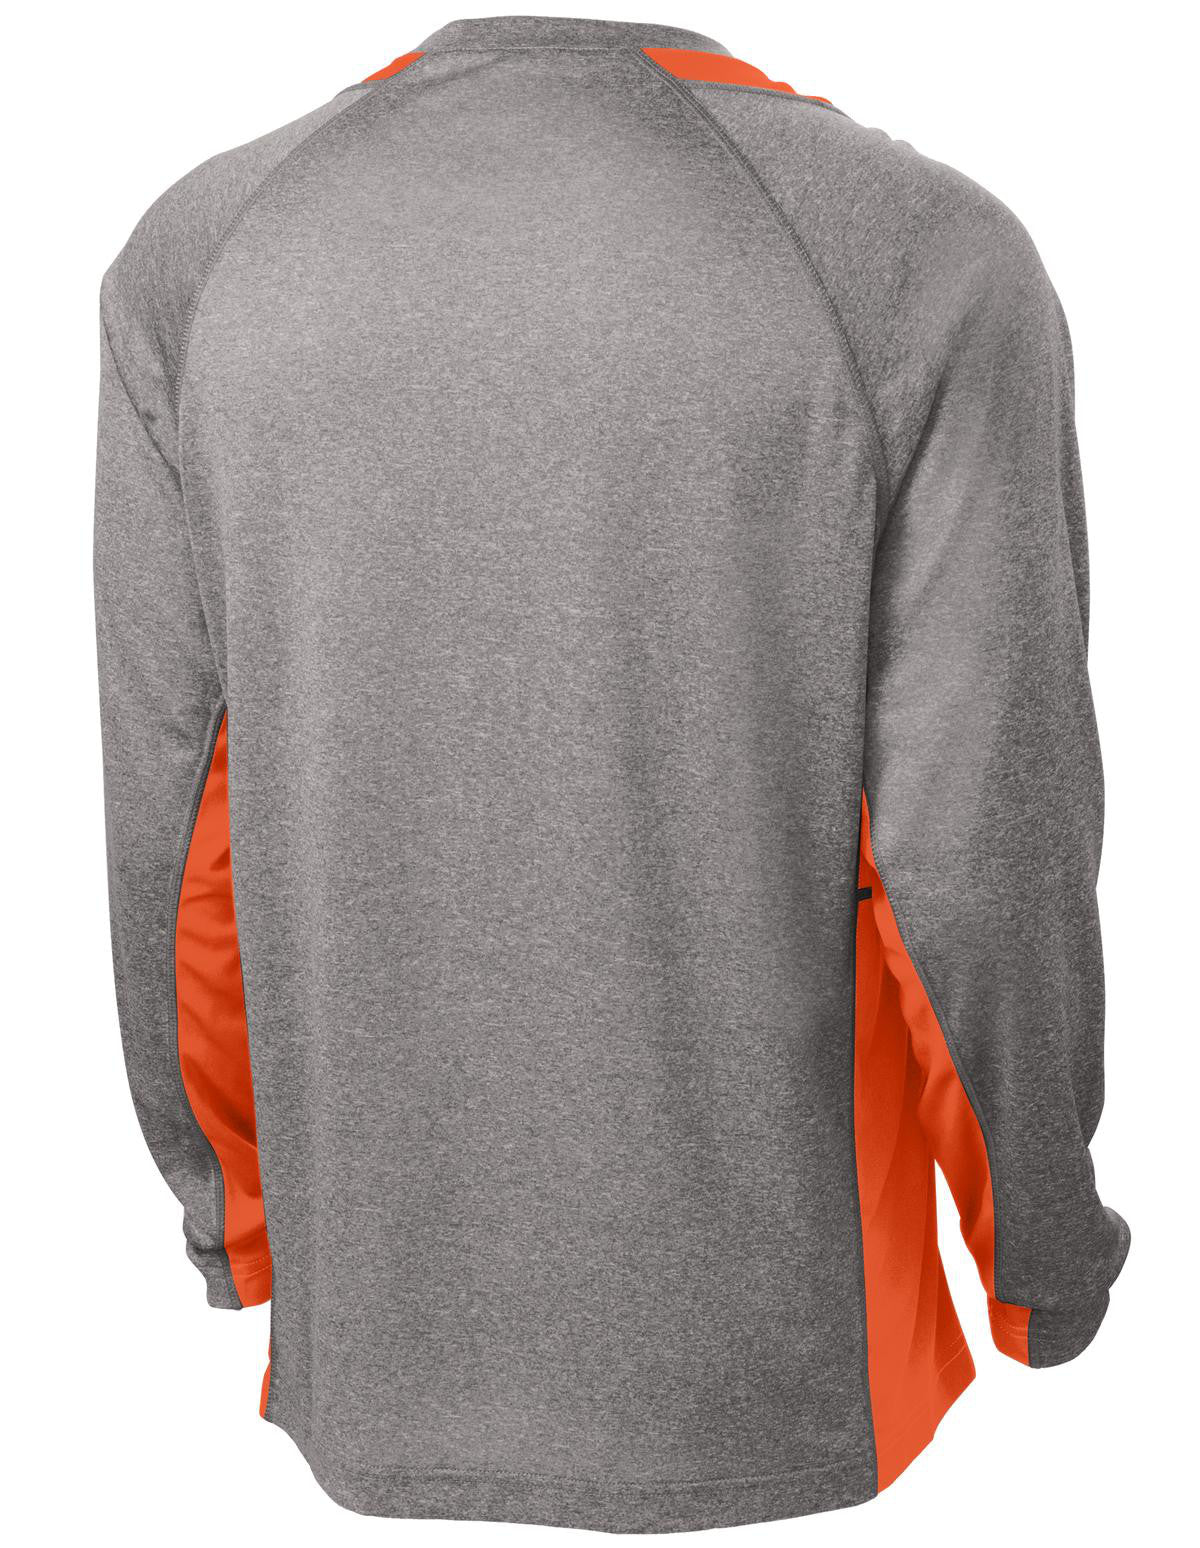 Mafoose Men's Long Sleeve Heather Colorblock Contender Tee Shirt Vintage Heather/ Deep Orange-Back